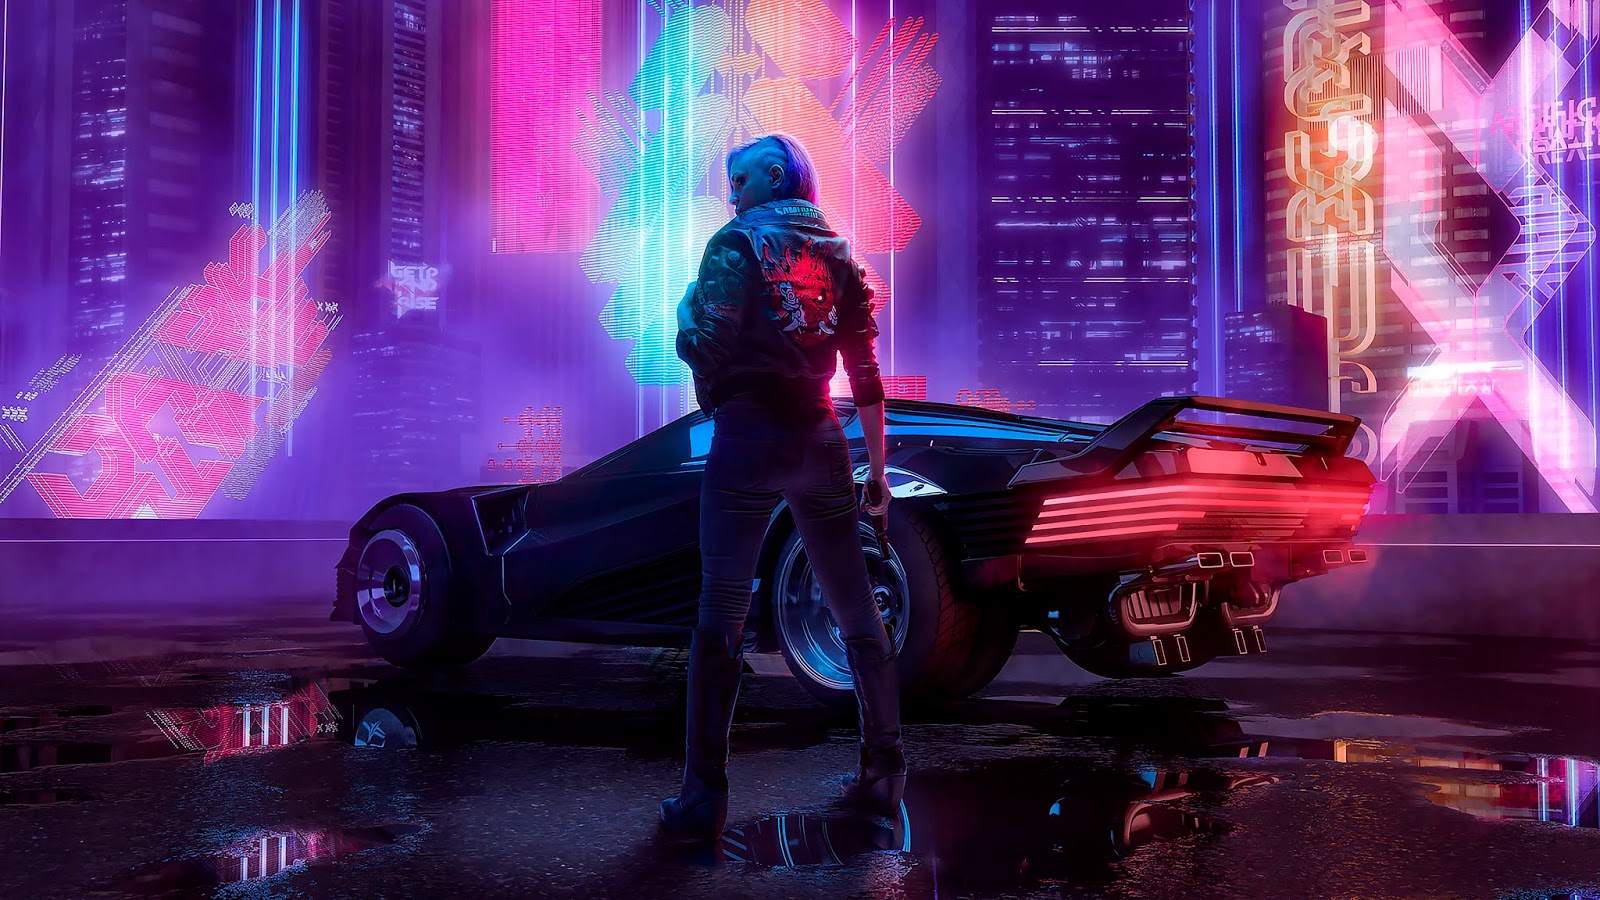 Cyberpunk 2077 Wallpaper for Desktop